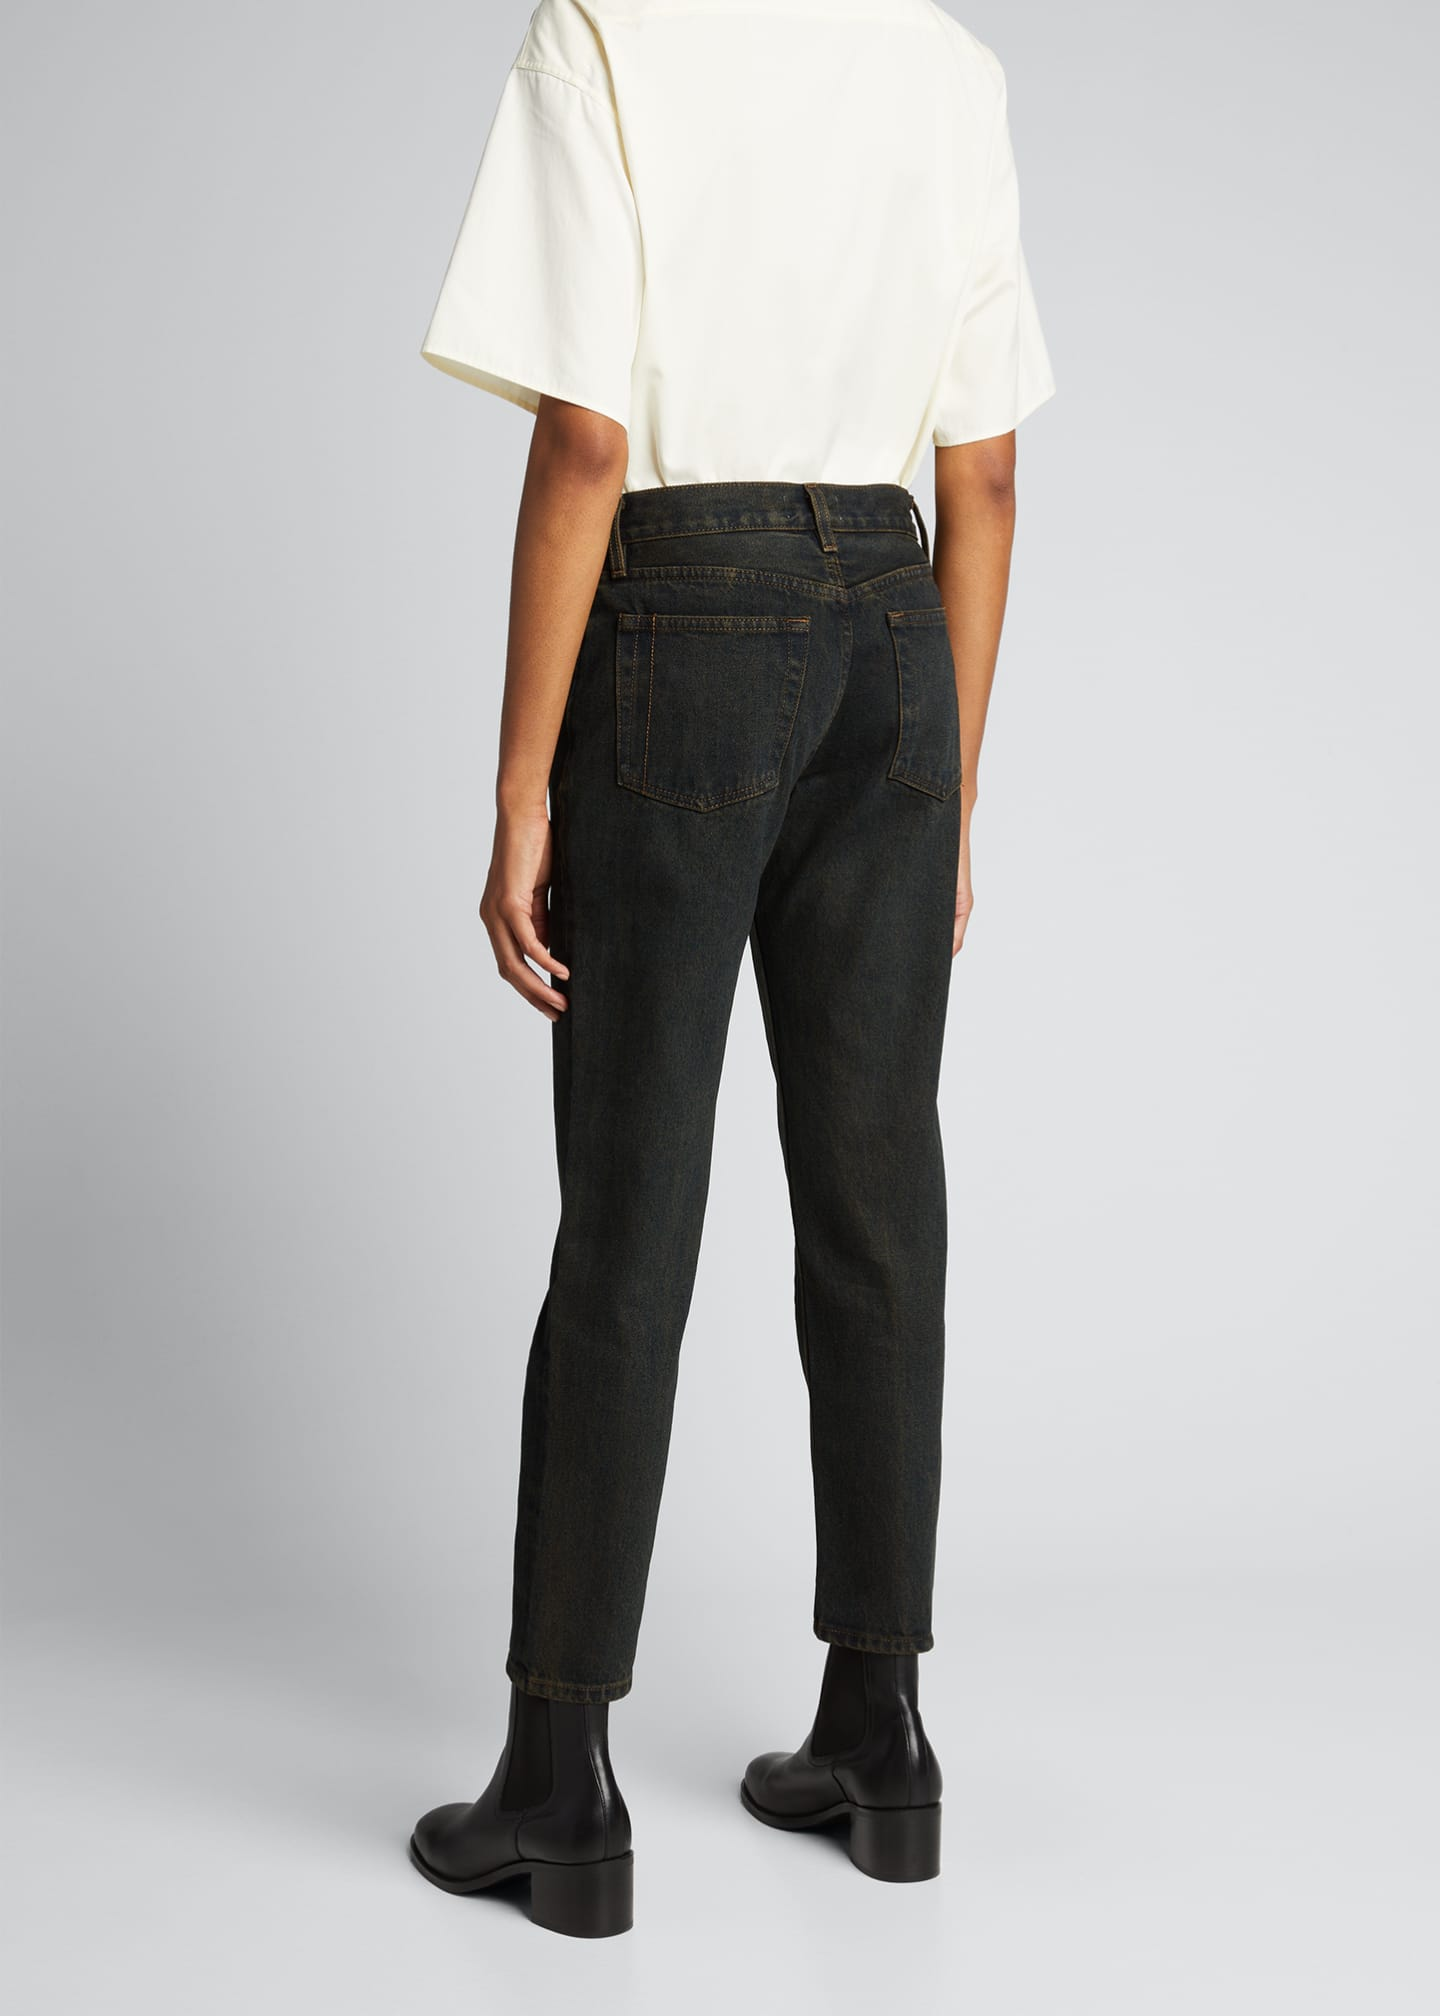 Image 2 of 5: The Rae Original Cropped Jeans